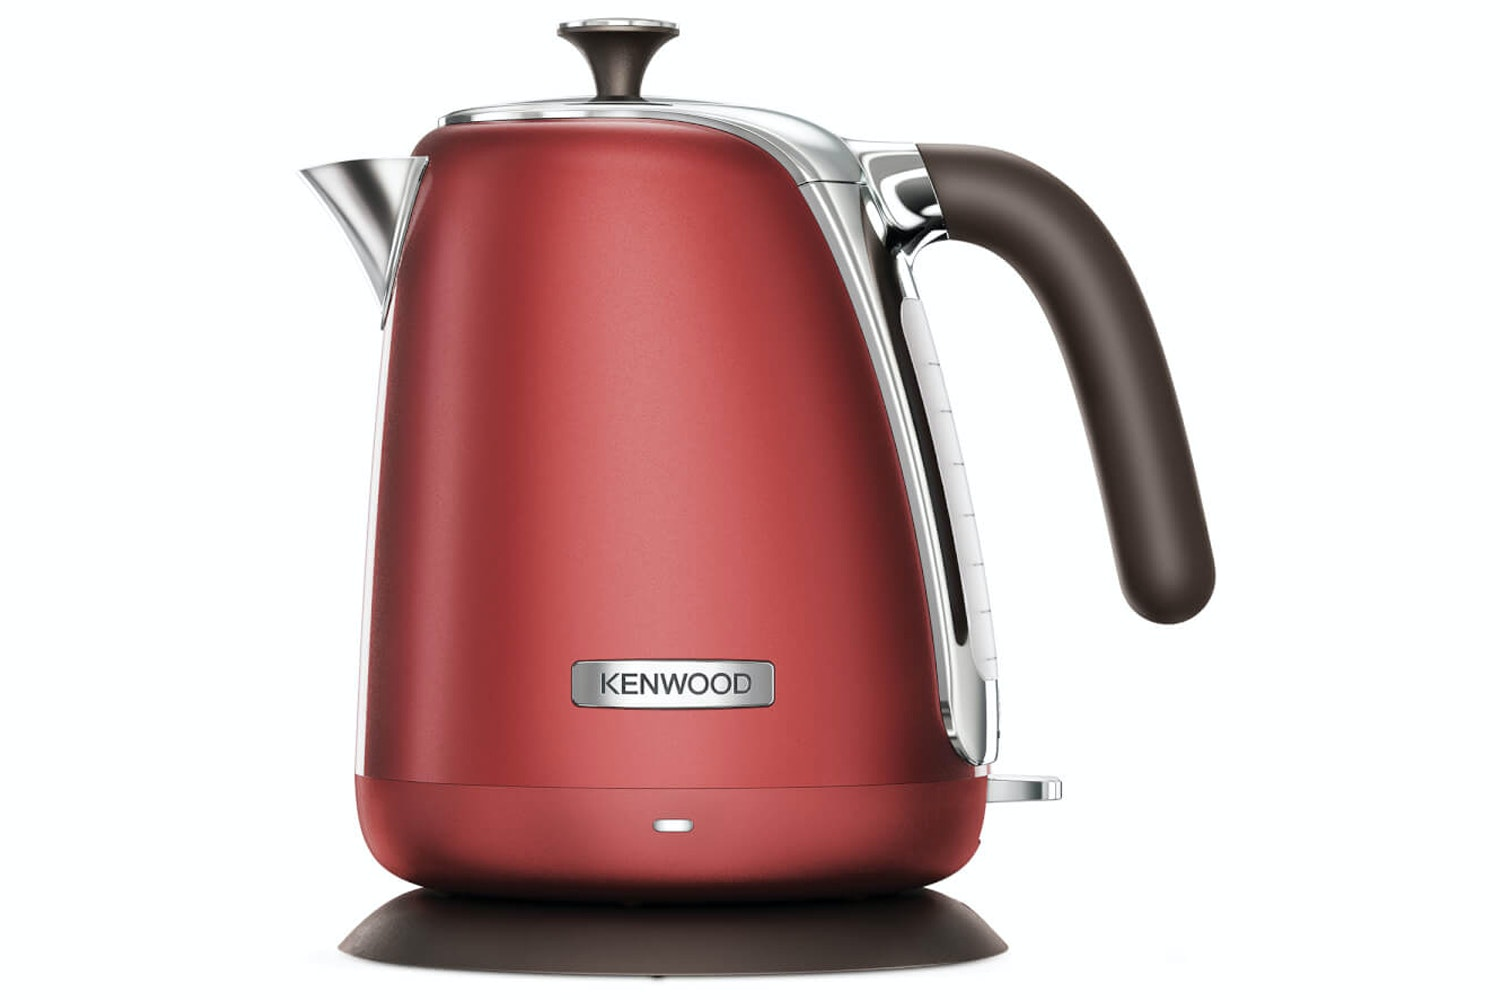 Kenwood 1.7L Turbo Kettle | ZJM300RD